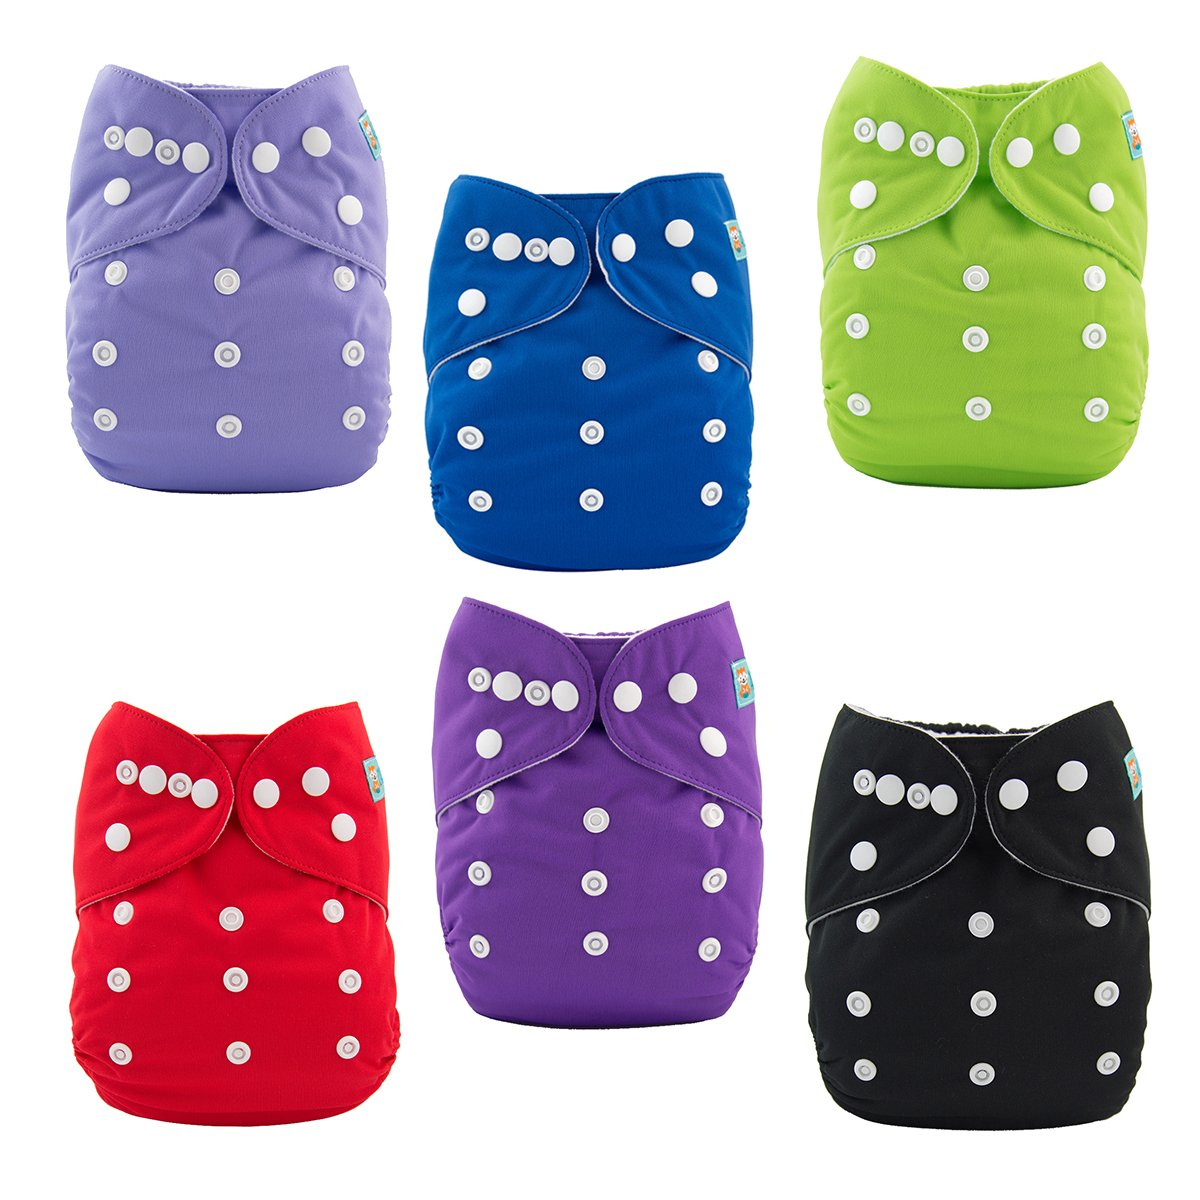 ALVABABY Baby 6pcs Pack Pocket Cloth Diaper with 2 Inserts Each (Girl Color)6DM03 6DM03-97